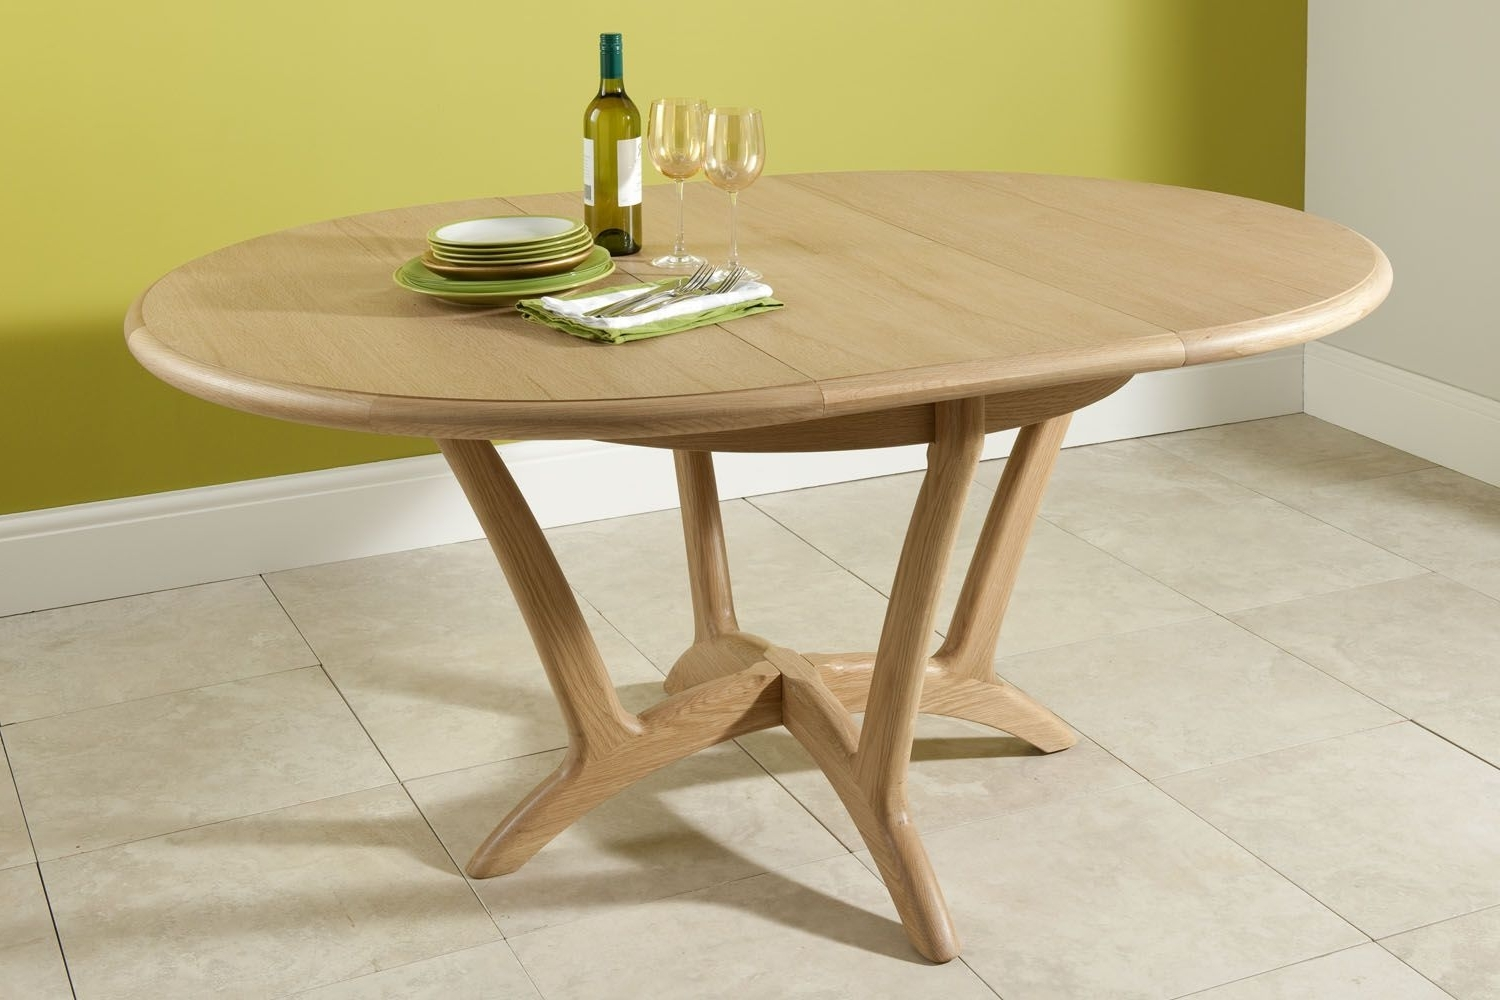 Round Extending Dining Tables And Chairs Intended For Well Liked Simple Extending Dining Table And Chairs (View 18 of 25)